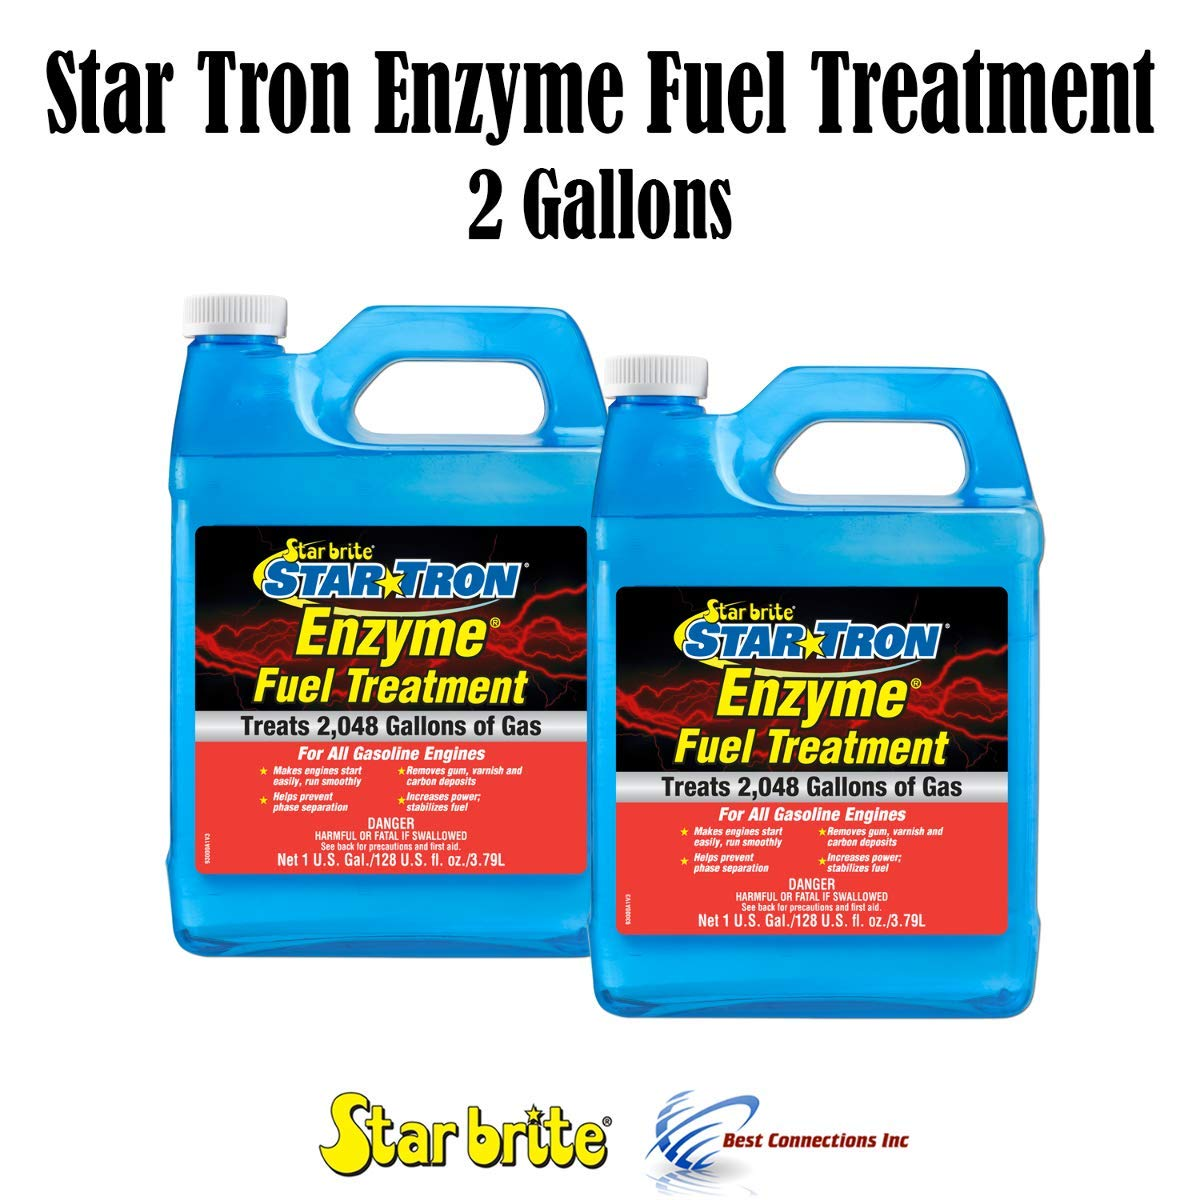 Star Brite Star Tron Enzyme Fuel Treatment Gas 2 Gallons Treats 4096 Gallons by Star Brite